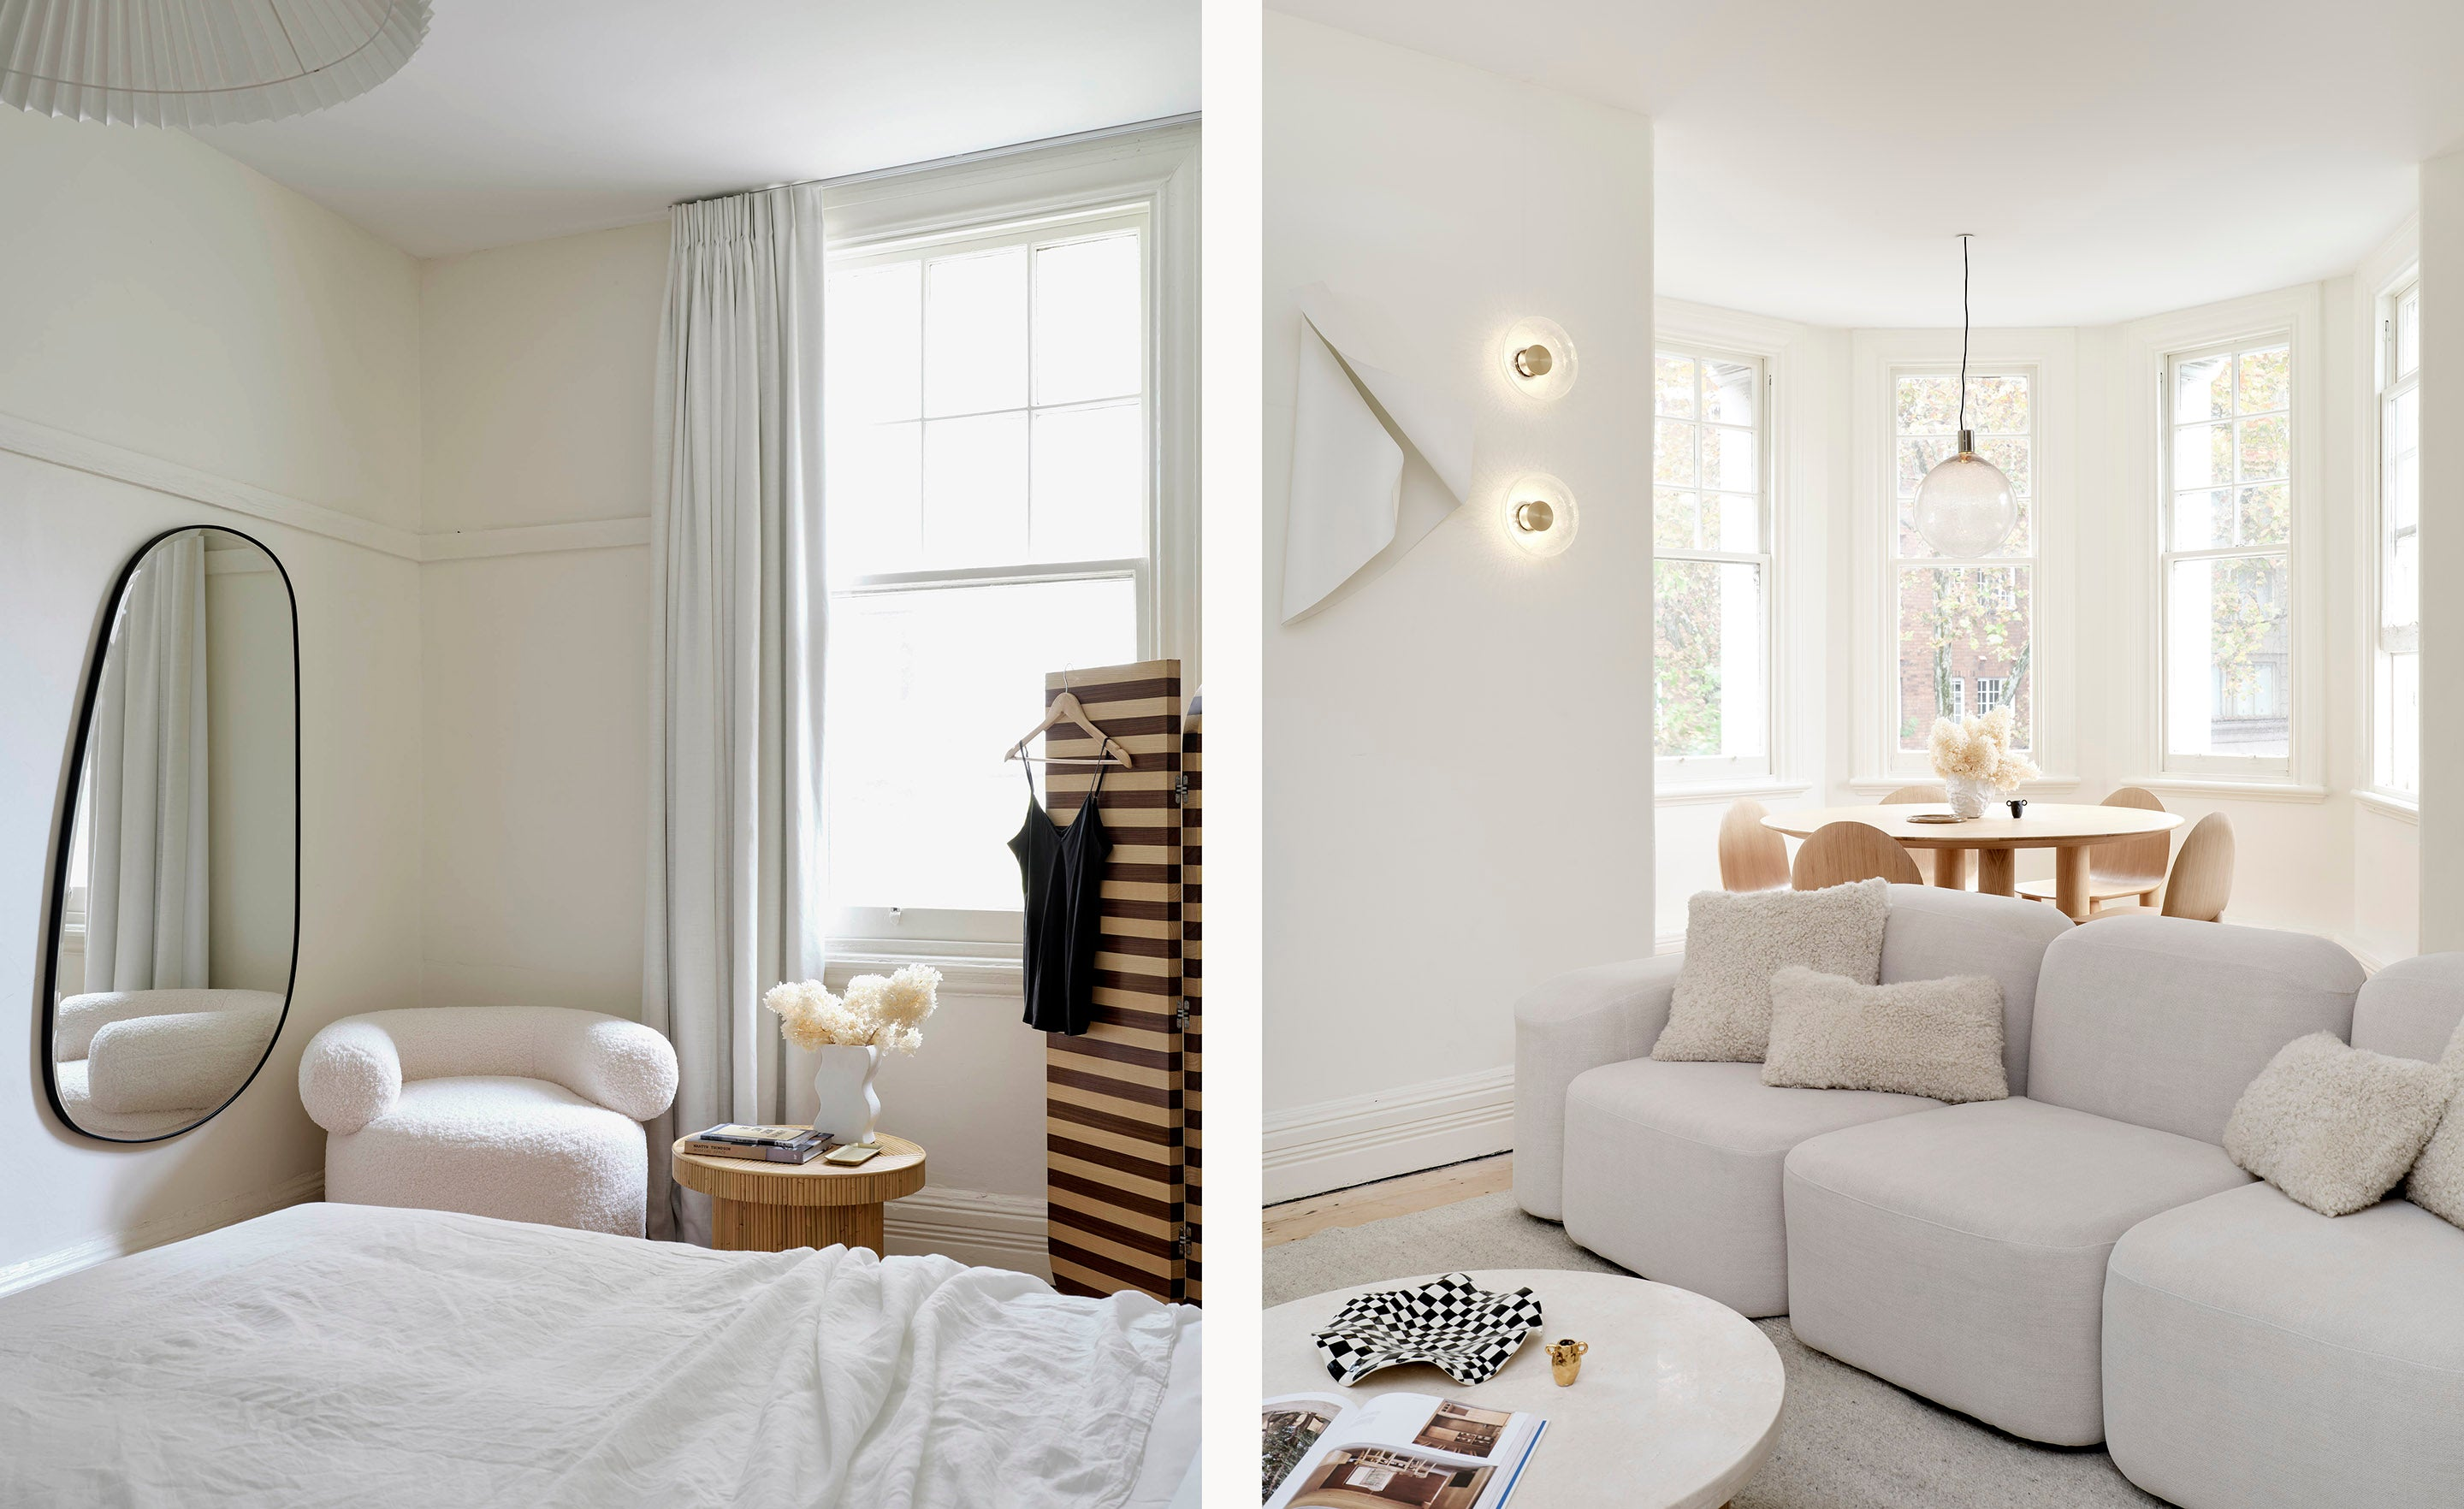 Sarah Ellison's Three Rooms apartment, featuring our Pebble Mirror, the Huggy Armchair, and the Muse Linen Modular Sofa